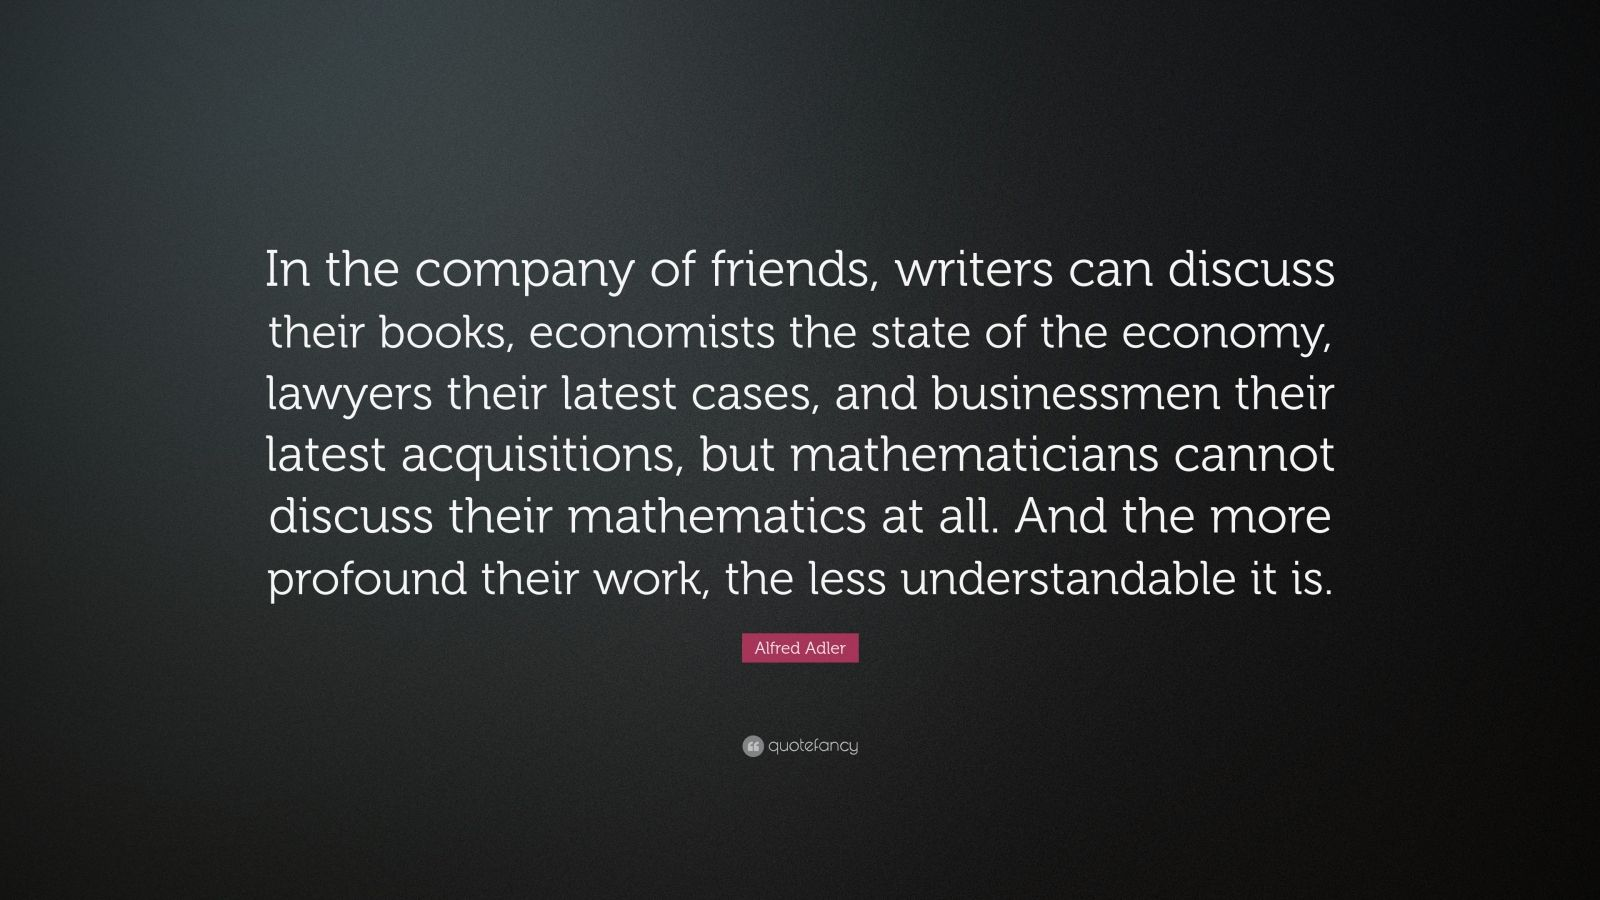 """Alfred Adler Quote: """"In the company of friends, writers can discuss their books, economists the state of the economy, lawyers their latest cases, and businessmen their latest acquisitions, but mathematicians cannot discuss their mathematics at all. And the more profound their work, the less understandable it is."""""""